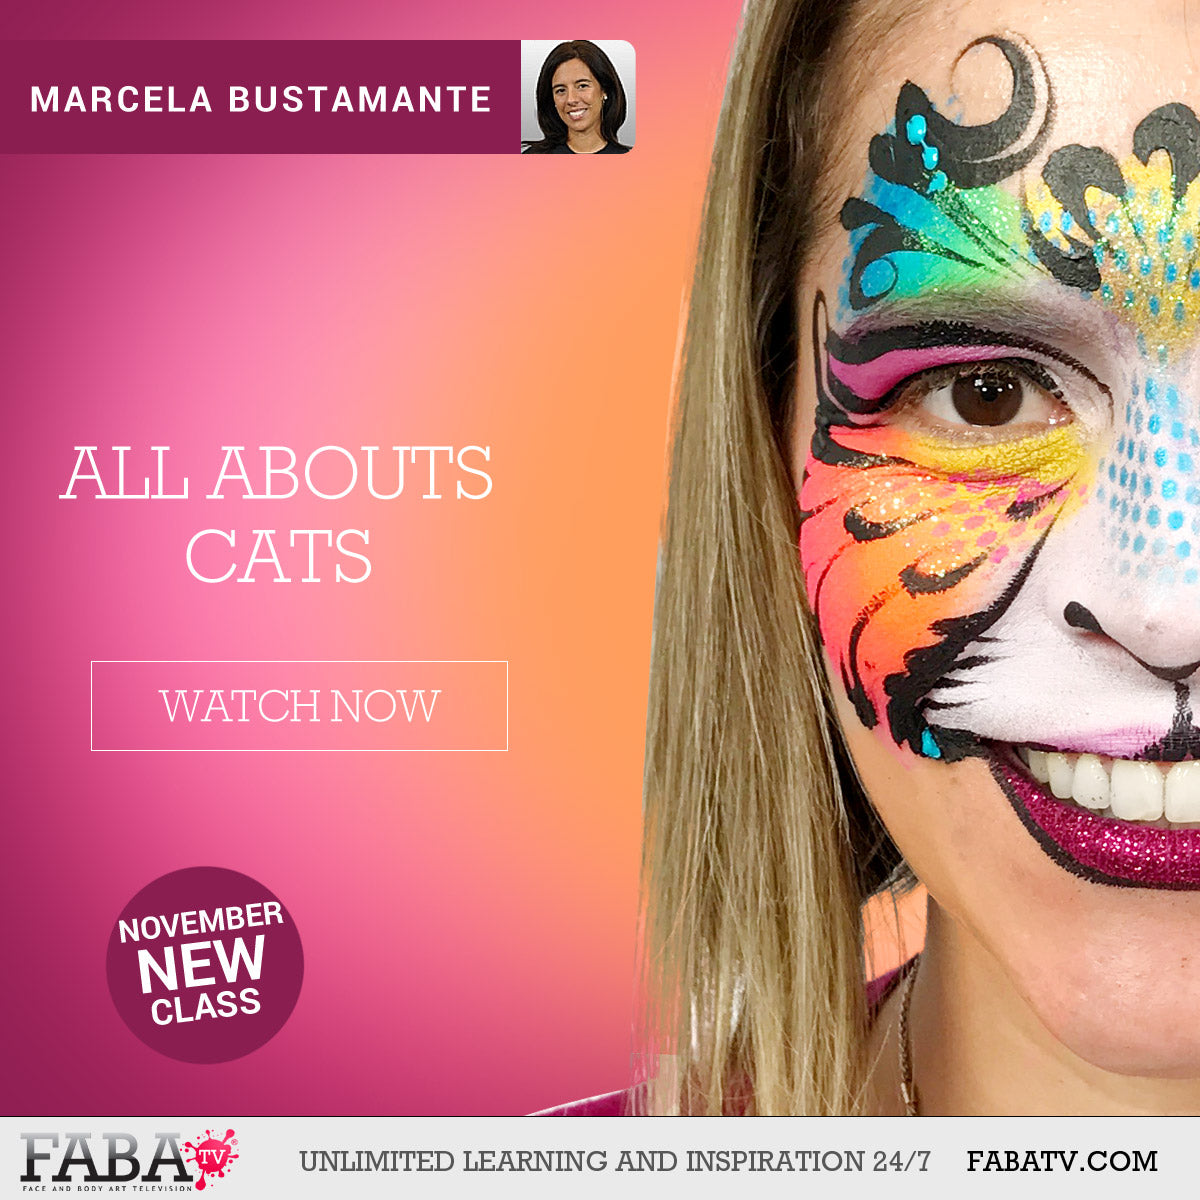 All About Cats FABATv Class